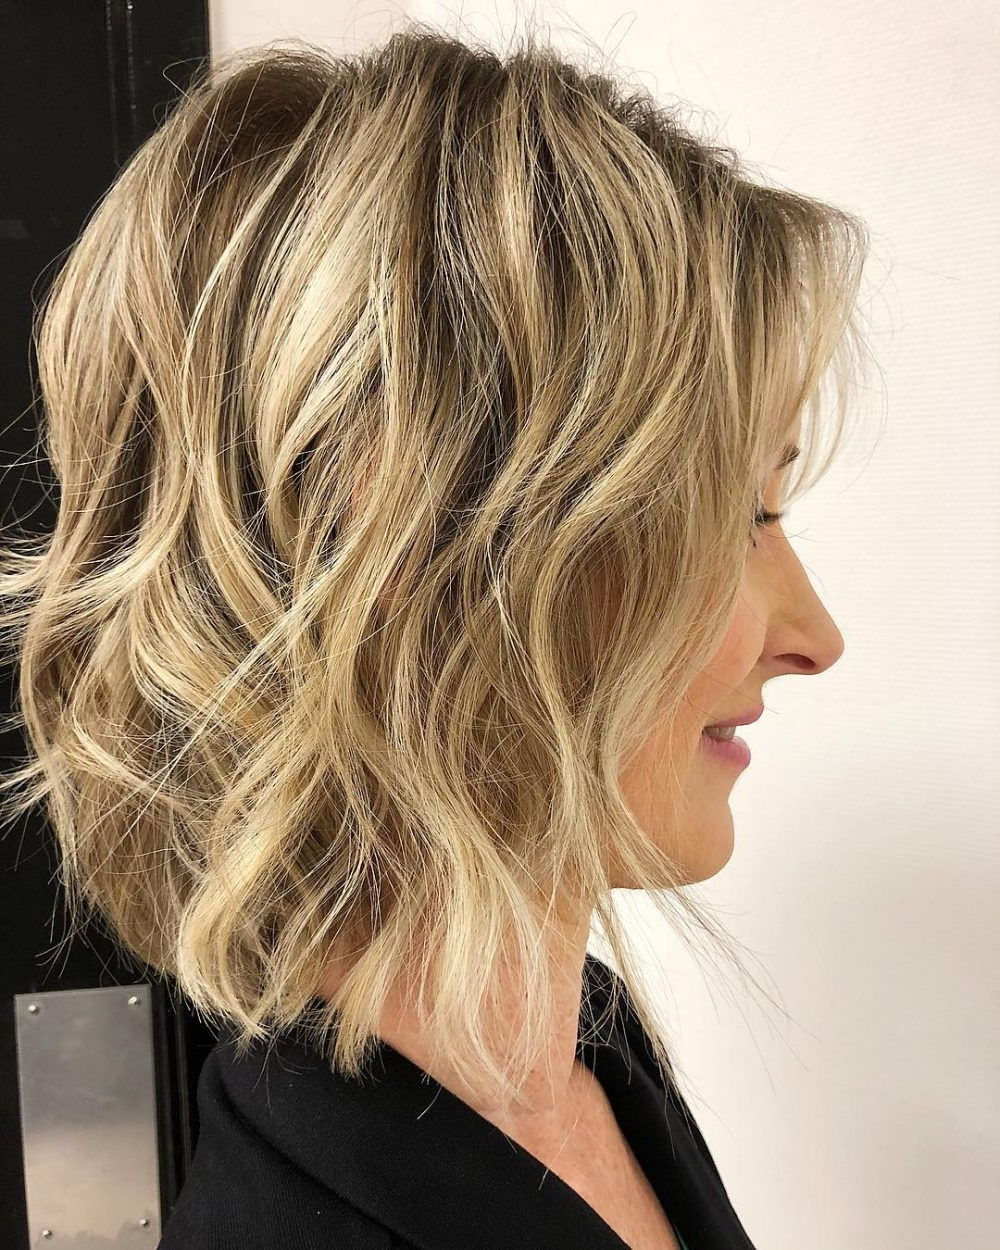 43 Perfect Short Hairstyles For Fine Hair In 2018 Inside Disheveled Brunette Choppy Bob Hairstyles (View 2 of 20)